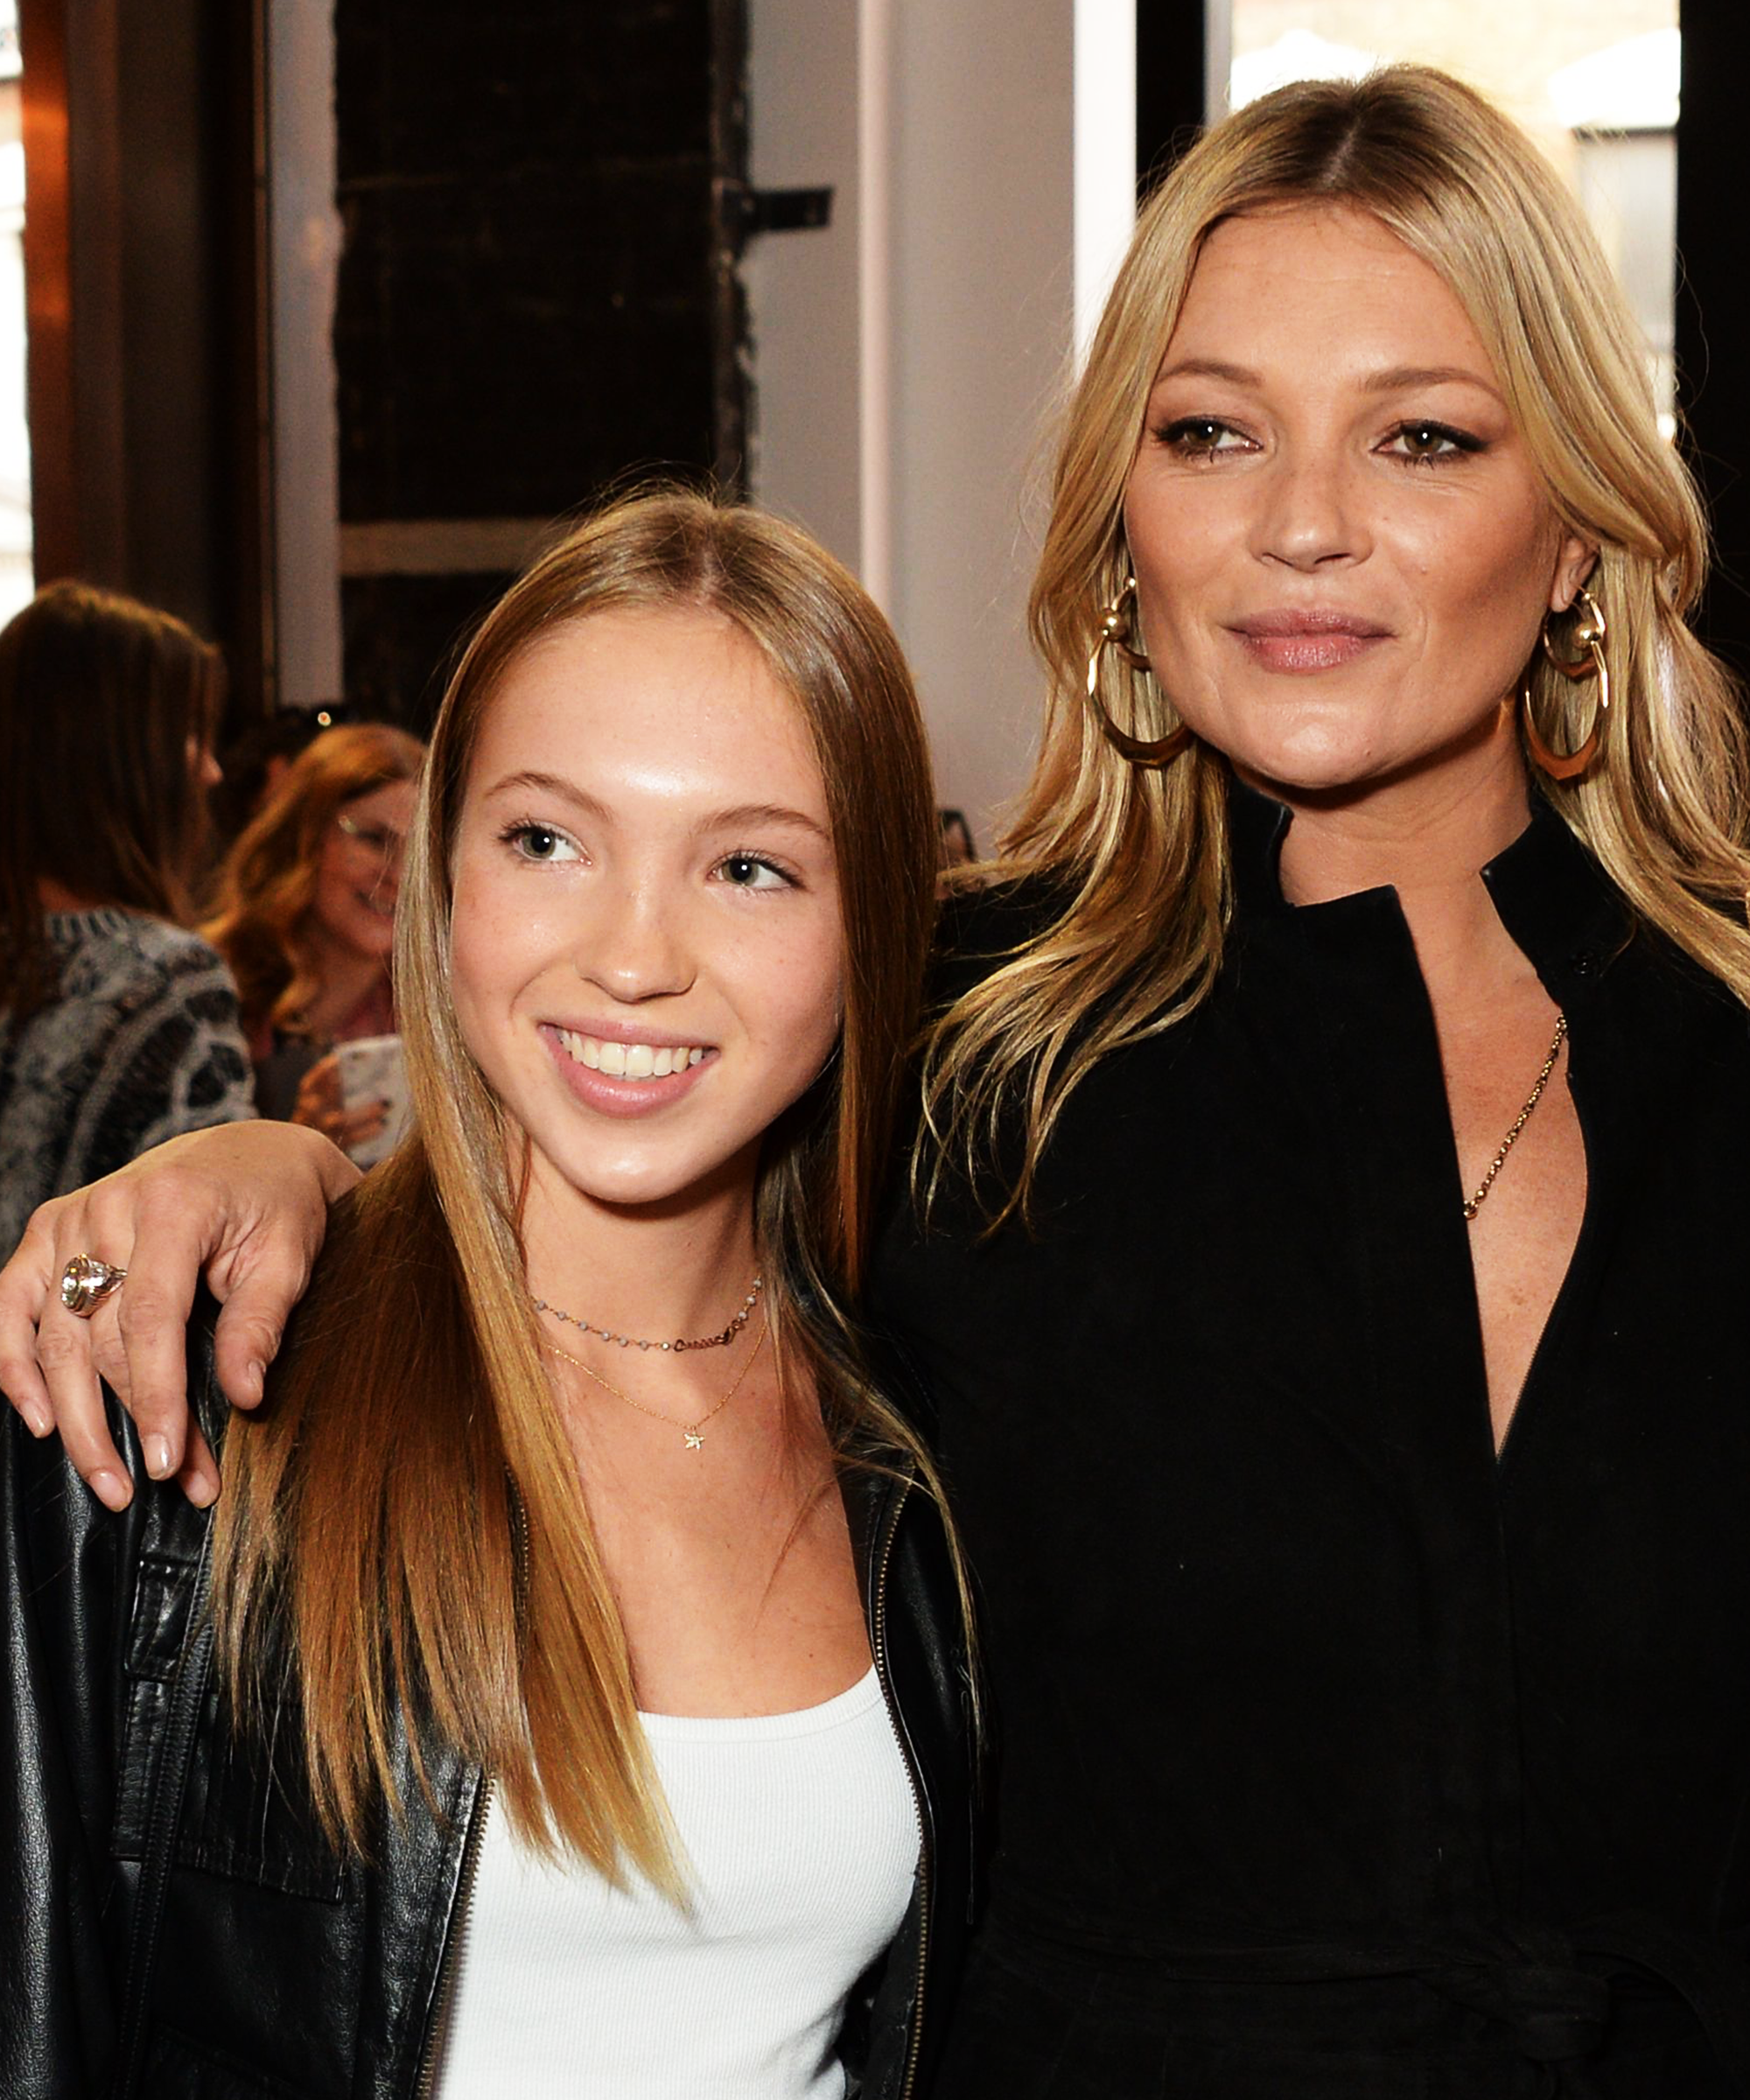 Discussion on this topic: Kate Moss is an Embarrassing' Mom, Says , kate-moss-is-an-embarrassing-mom-says/